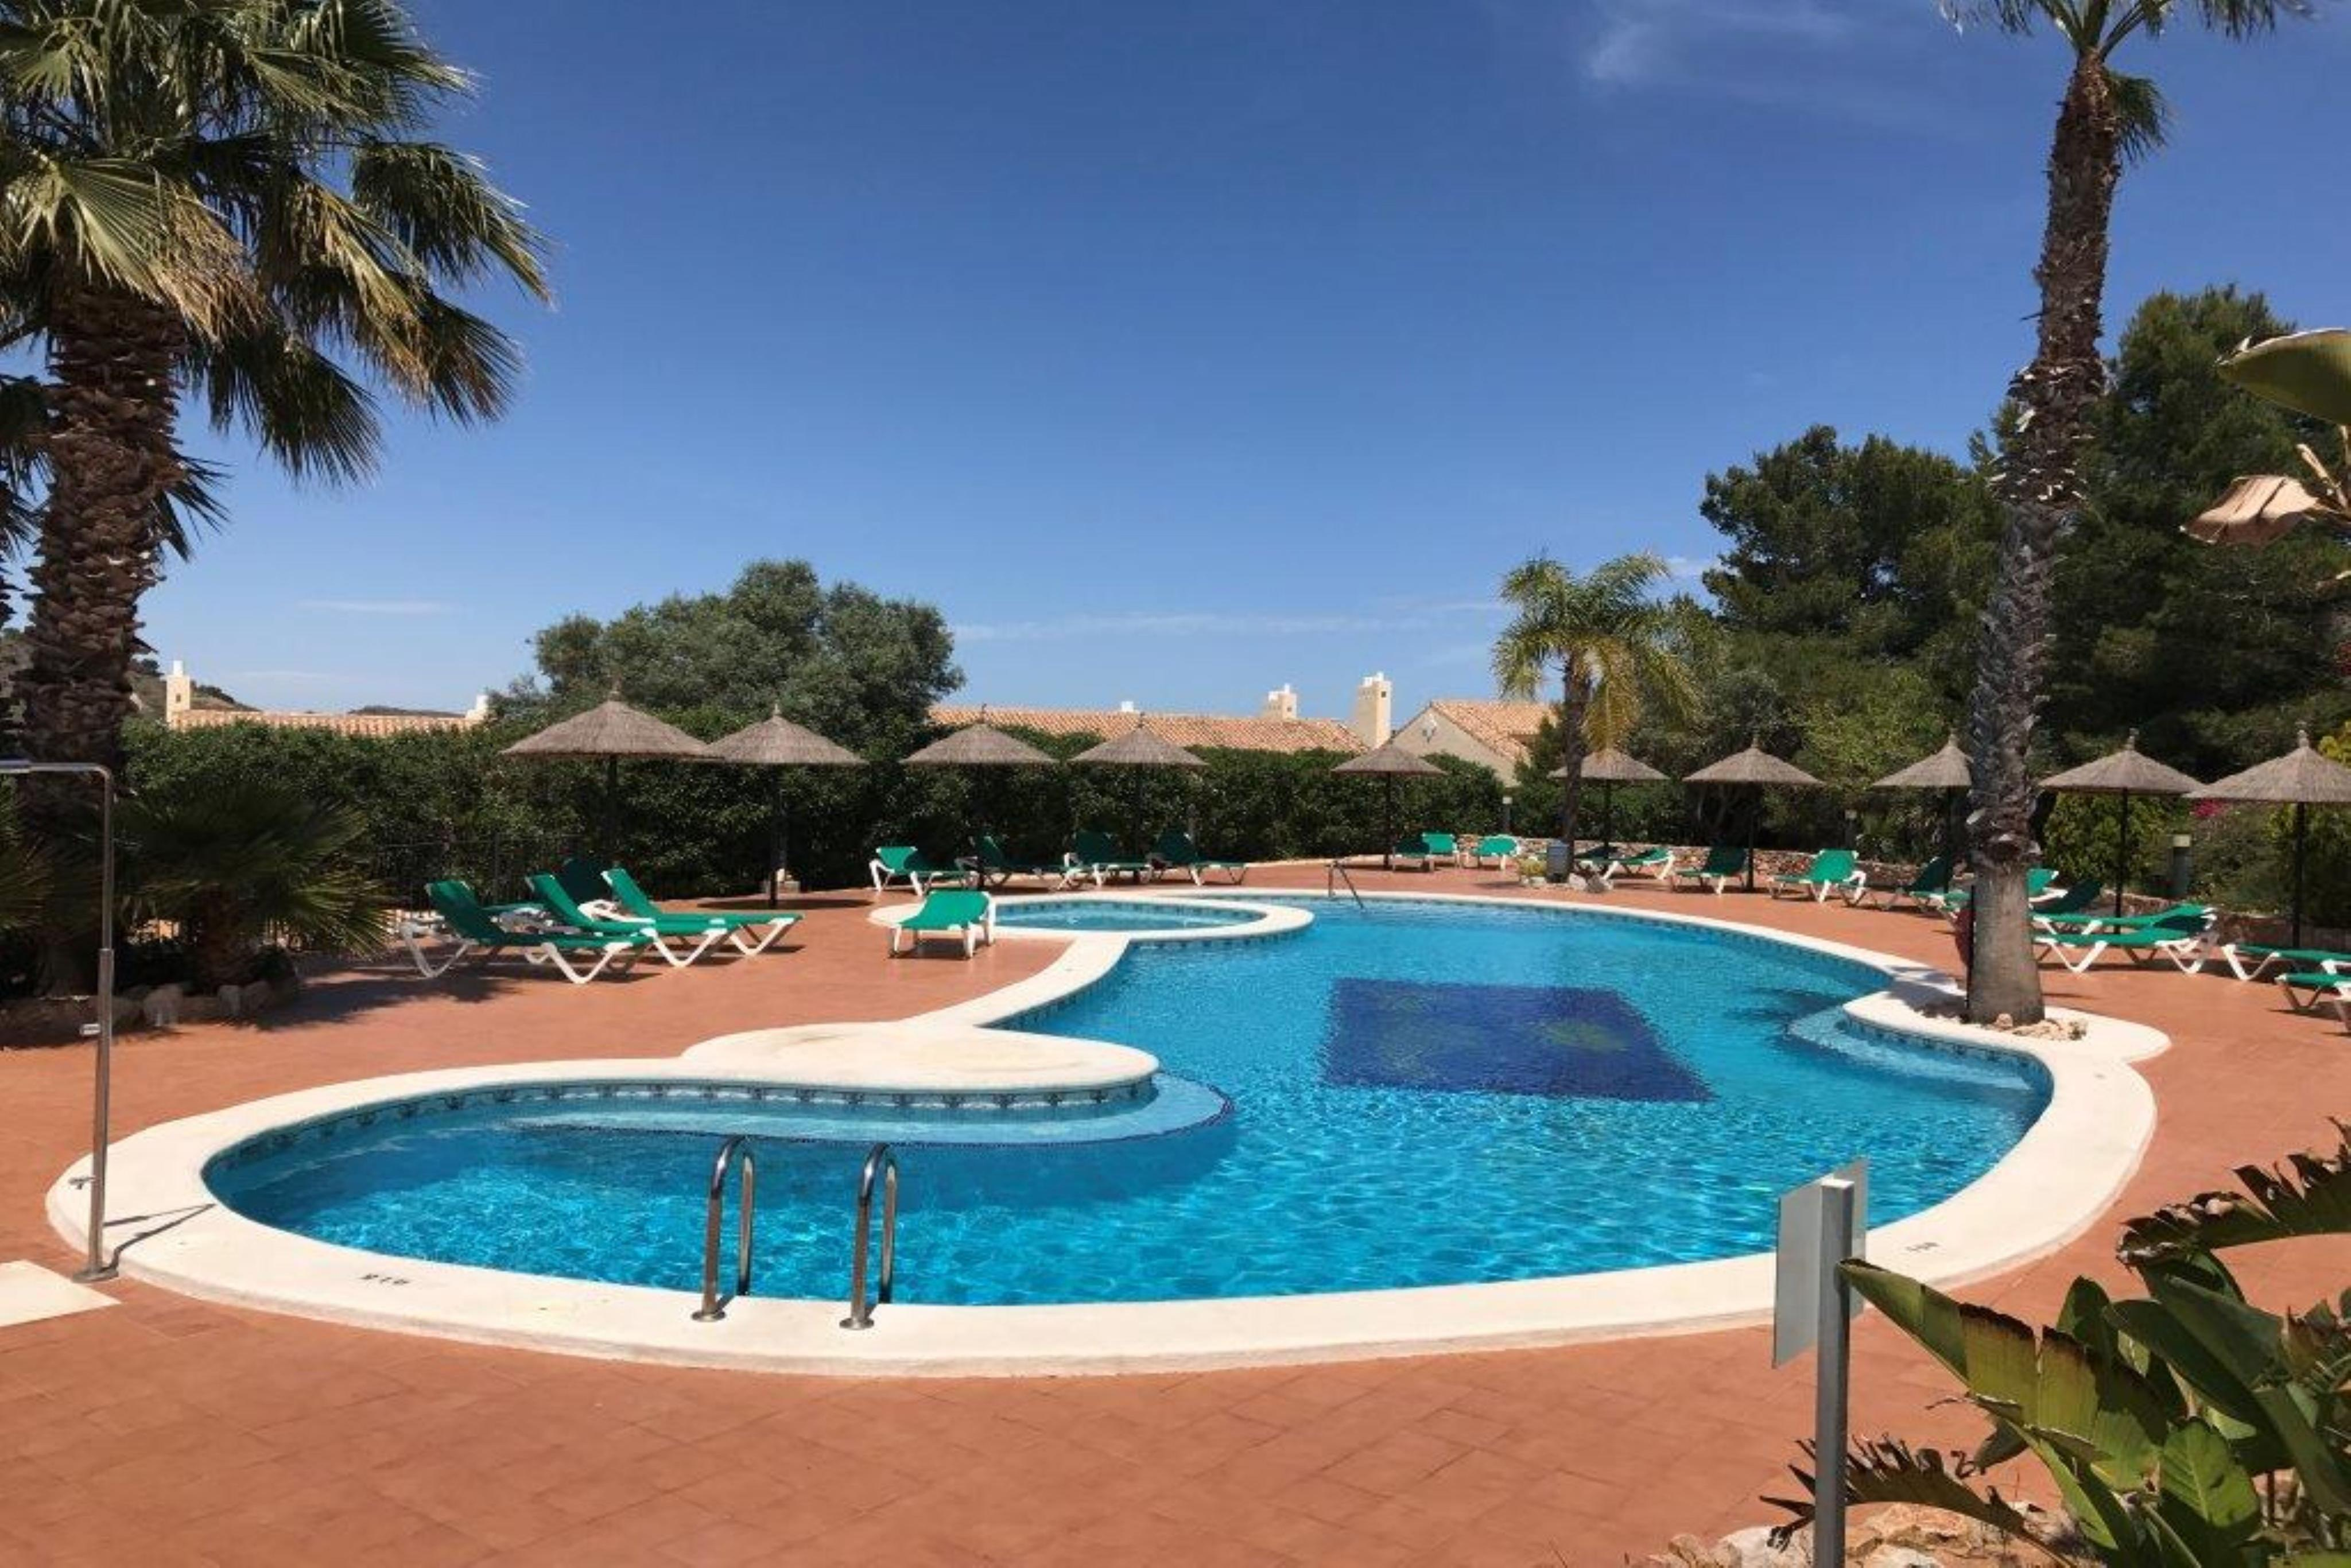 La Manga Club Resort - Los Olivos 343 3 Bedrooms, for rent